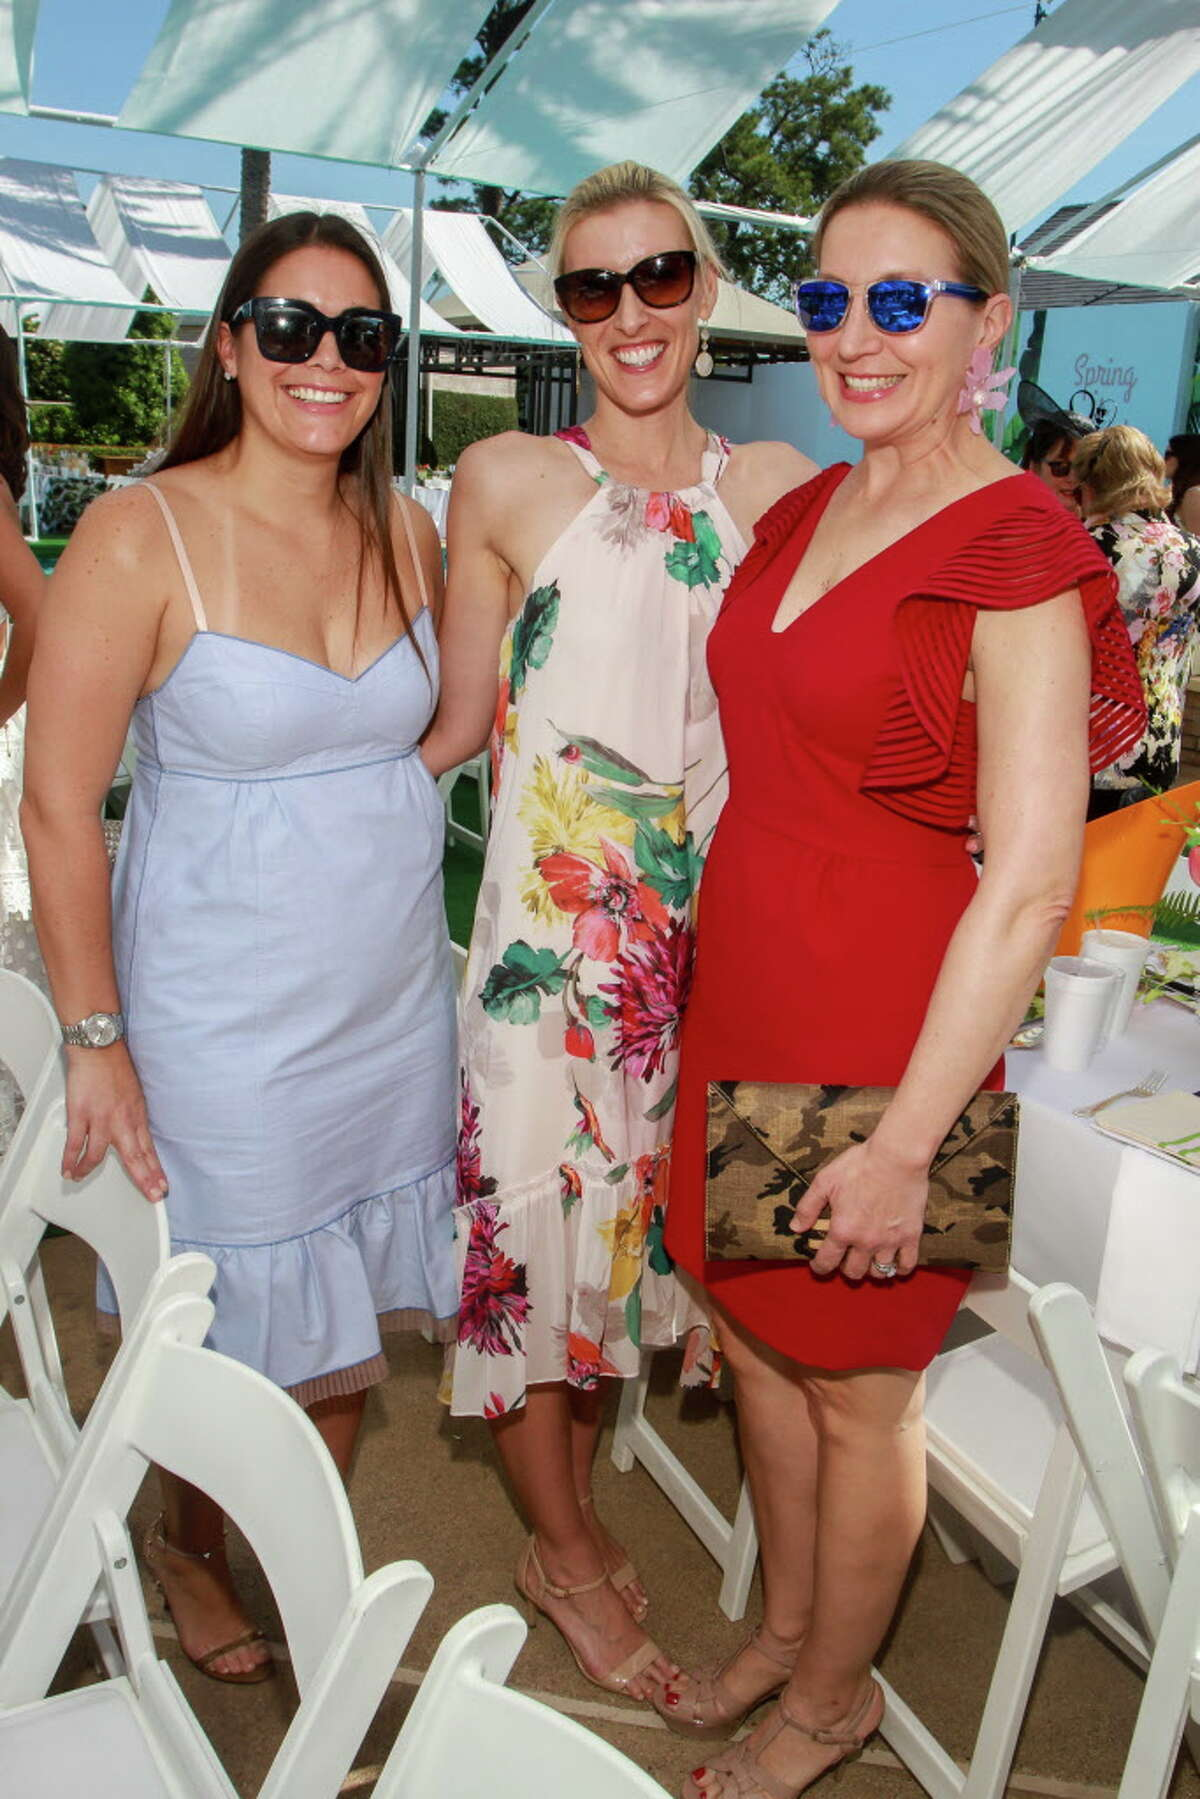 Lauren Morgan, from left, Kristina Frankel and Sandy Sturm at the Clay Court Tennis Fashion Show luncheon at River Oaks Country Club.